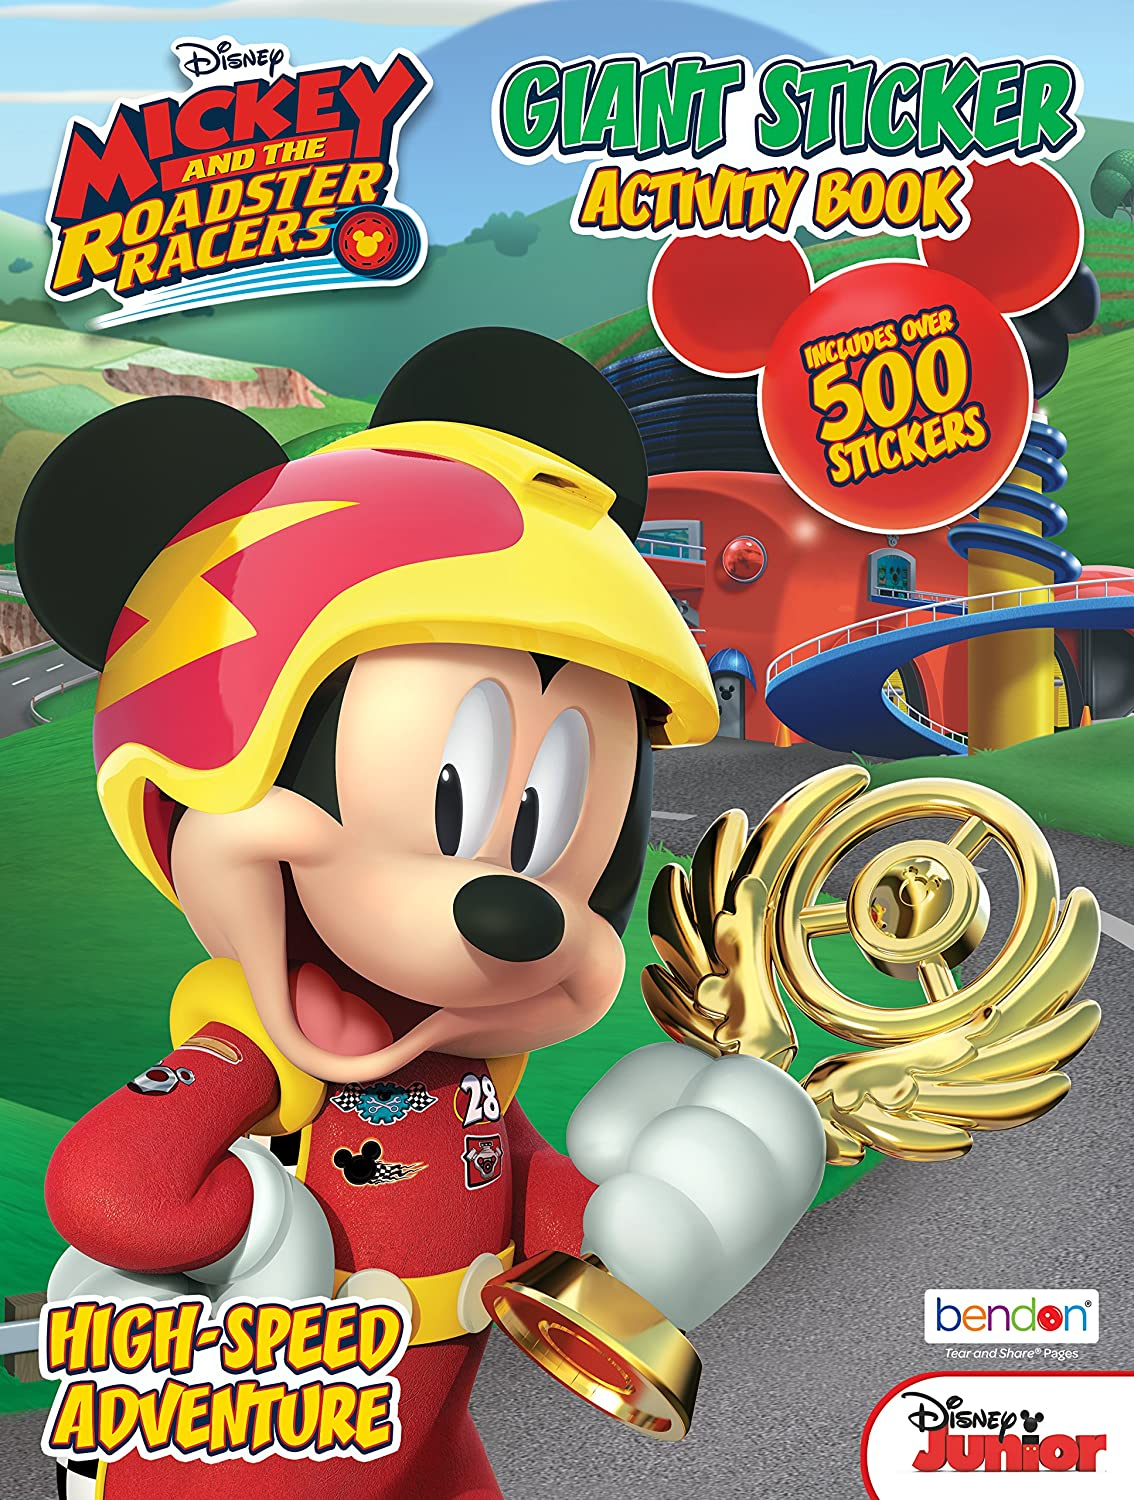 Bendon 43136-AMZB Mickey /& The Roadster Racers Giant Sticker Activity Book